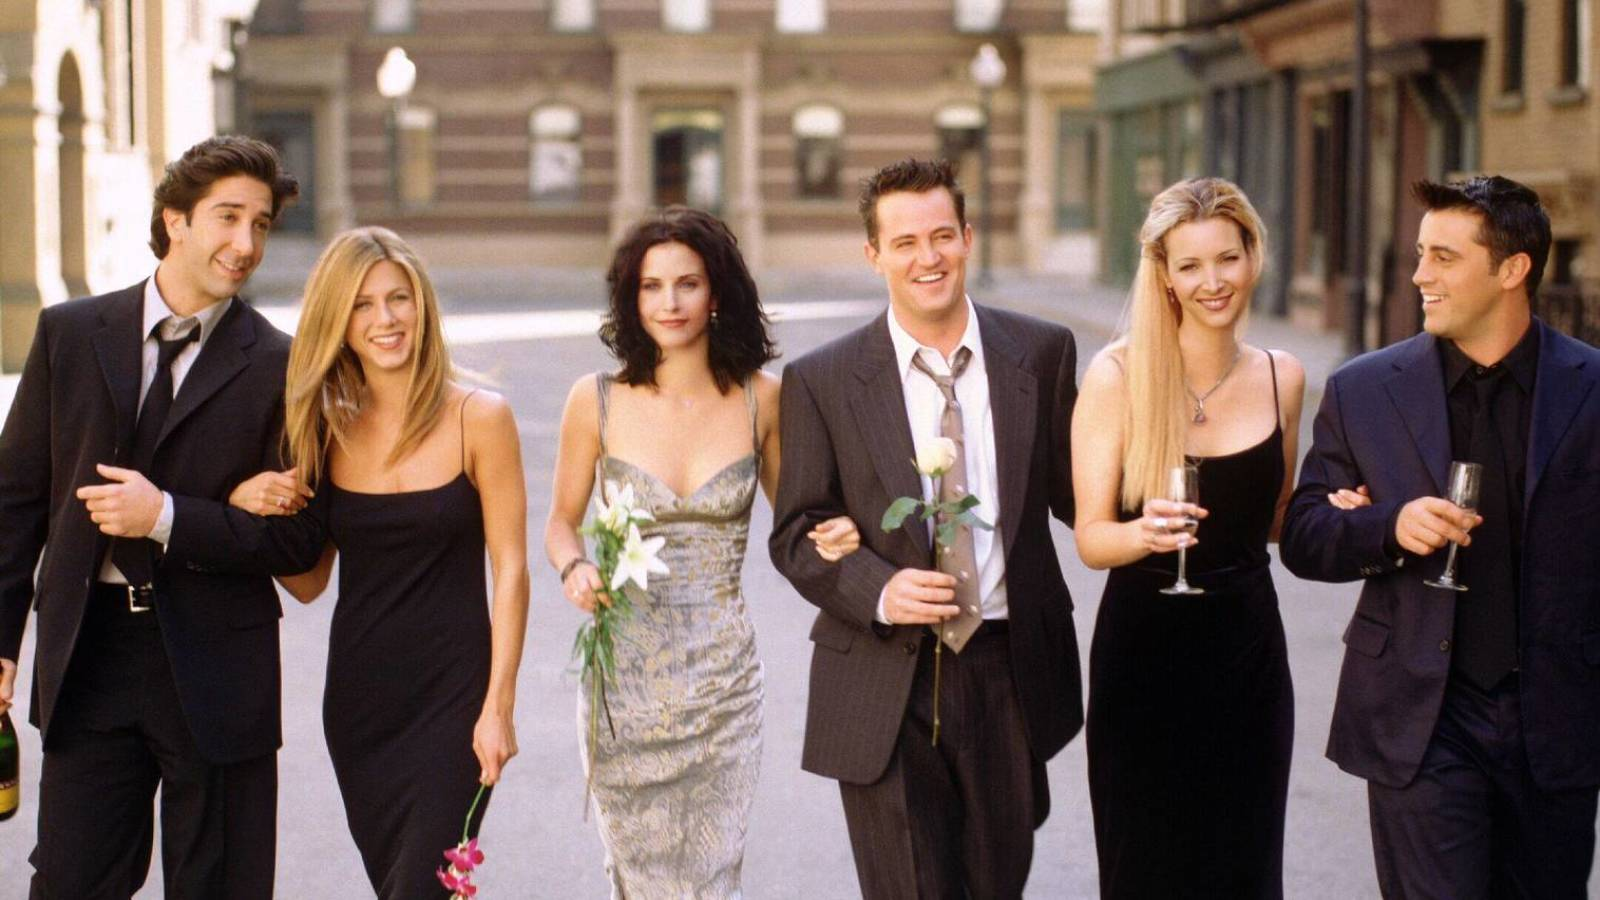 www.yardbarker.com: Courteney Cox recounts 'Friends' contract negotiations: 'We all stood by each other'